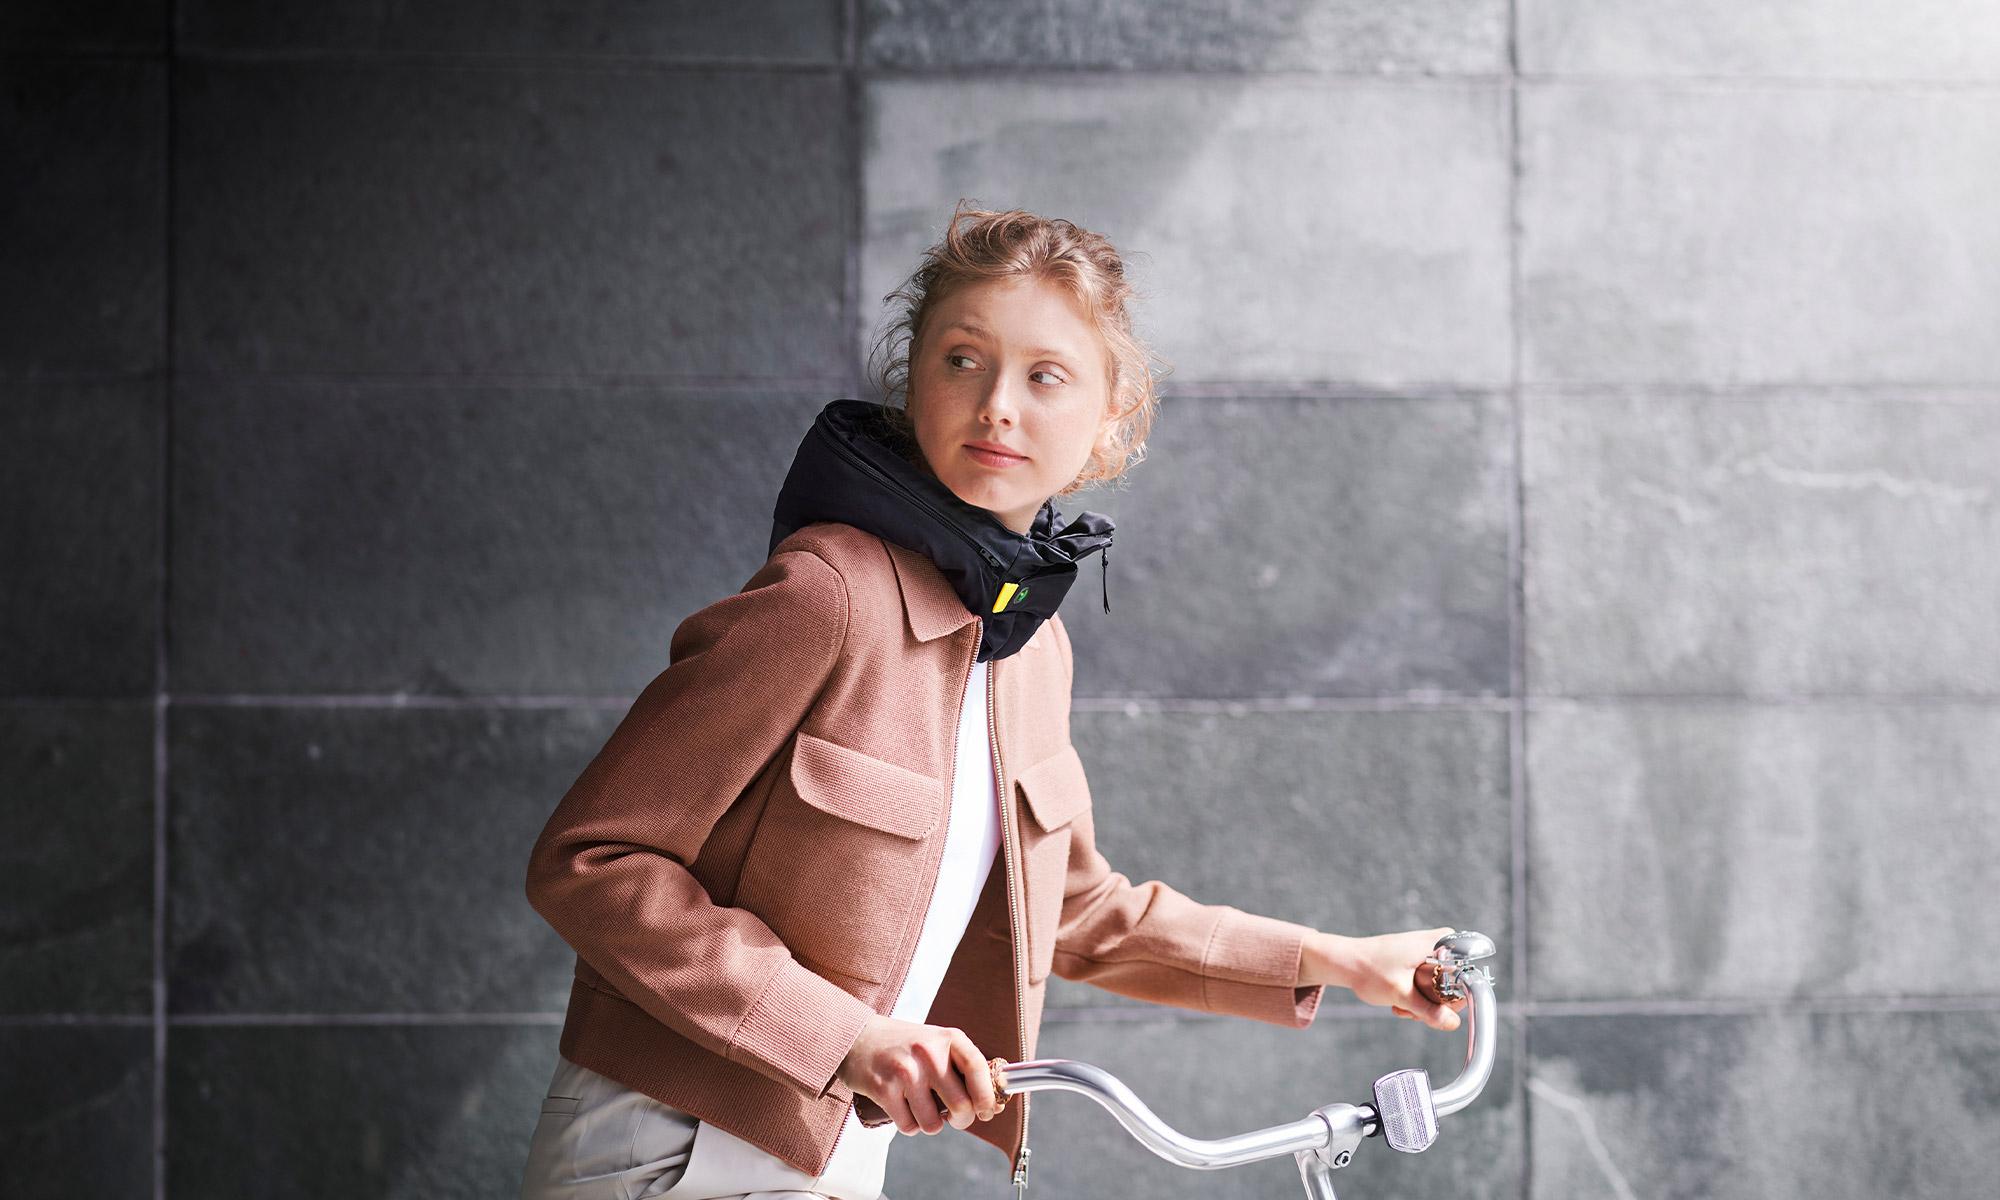 girl on a cycle with a protective headgear